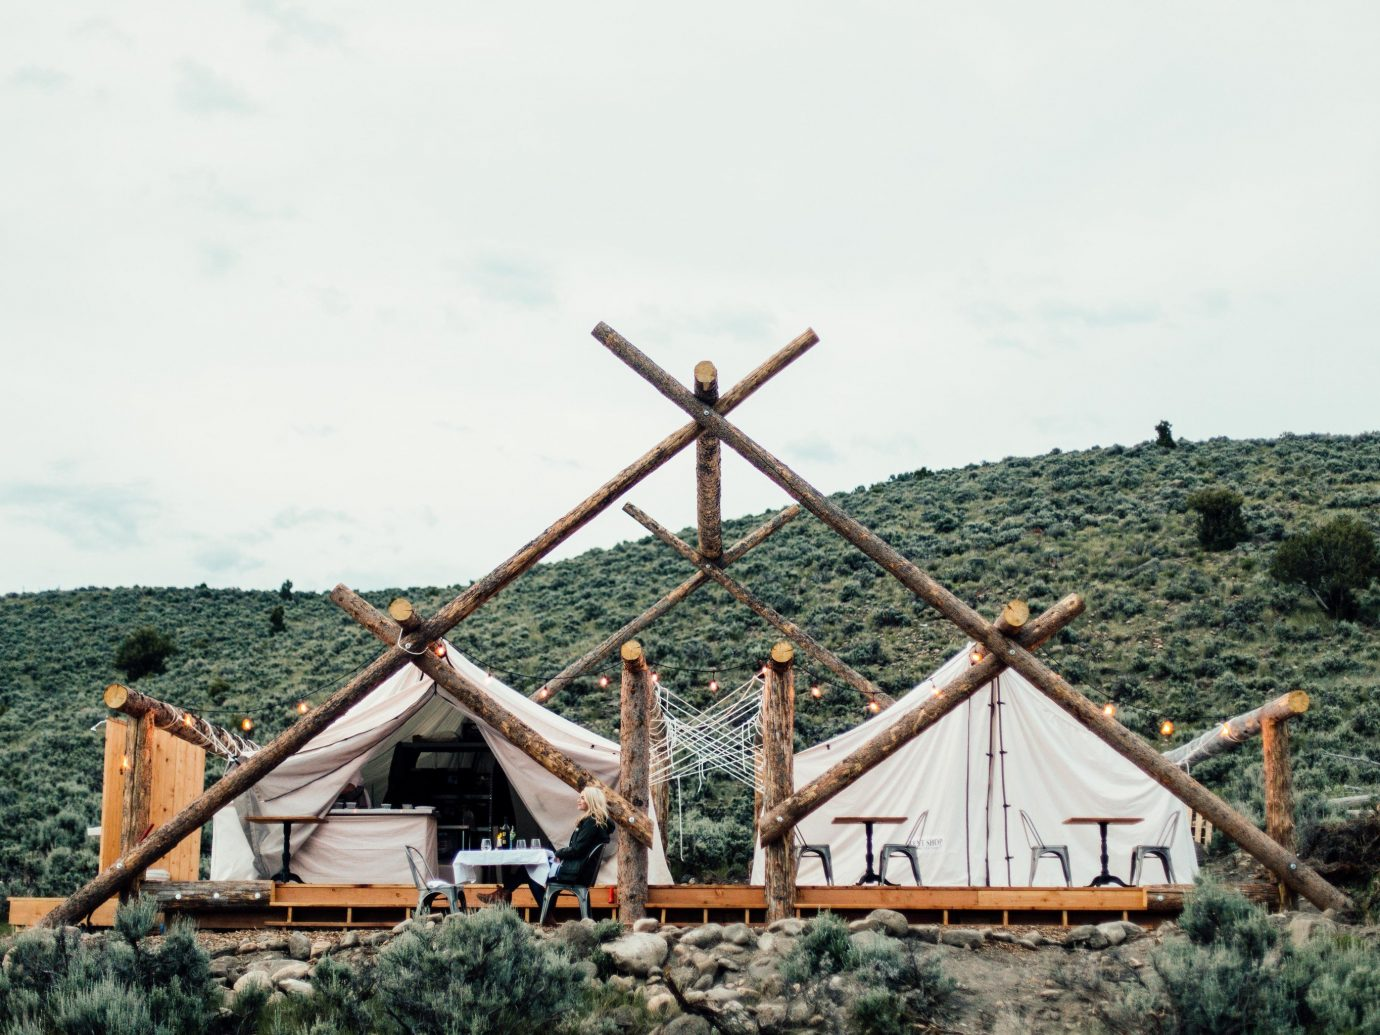 Glamping Luxury Travel Trip Ideas sky rural area roof tree house home outdoor structure windmill